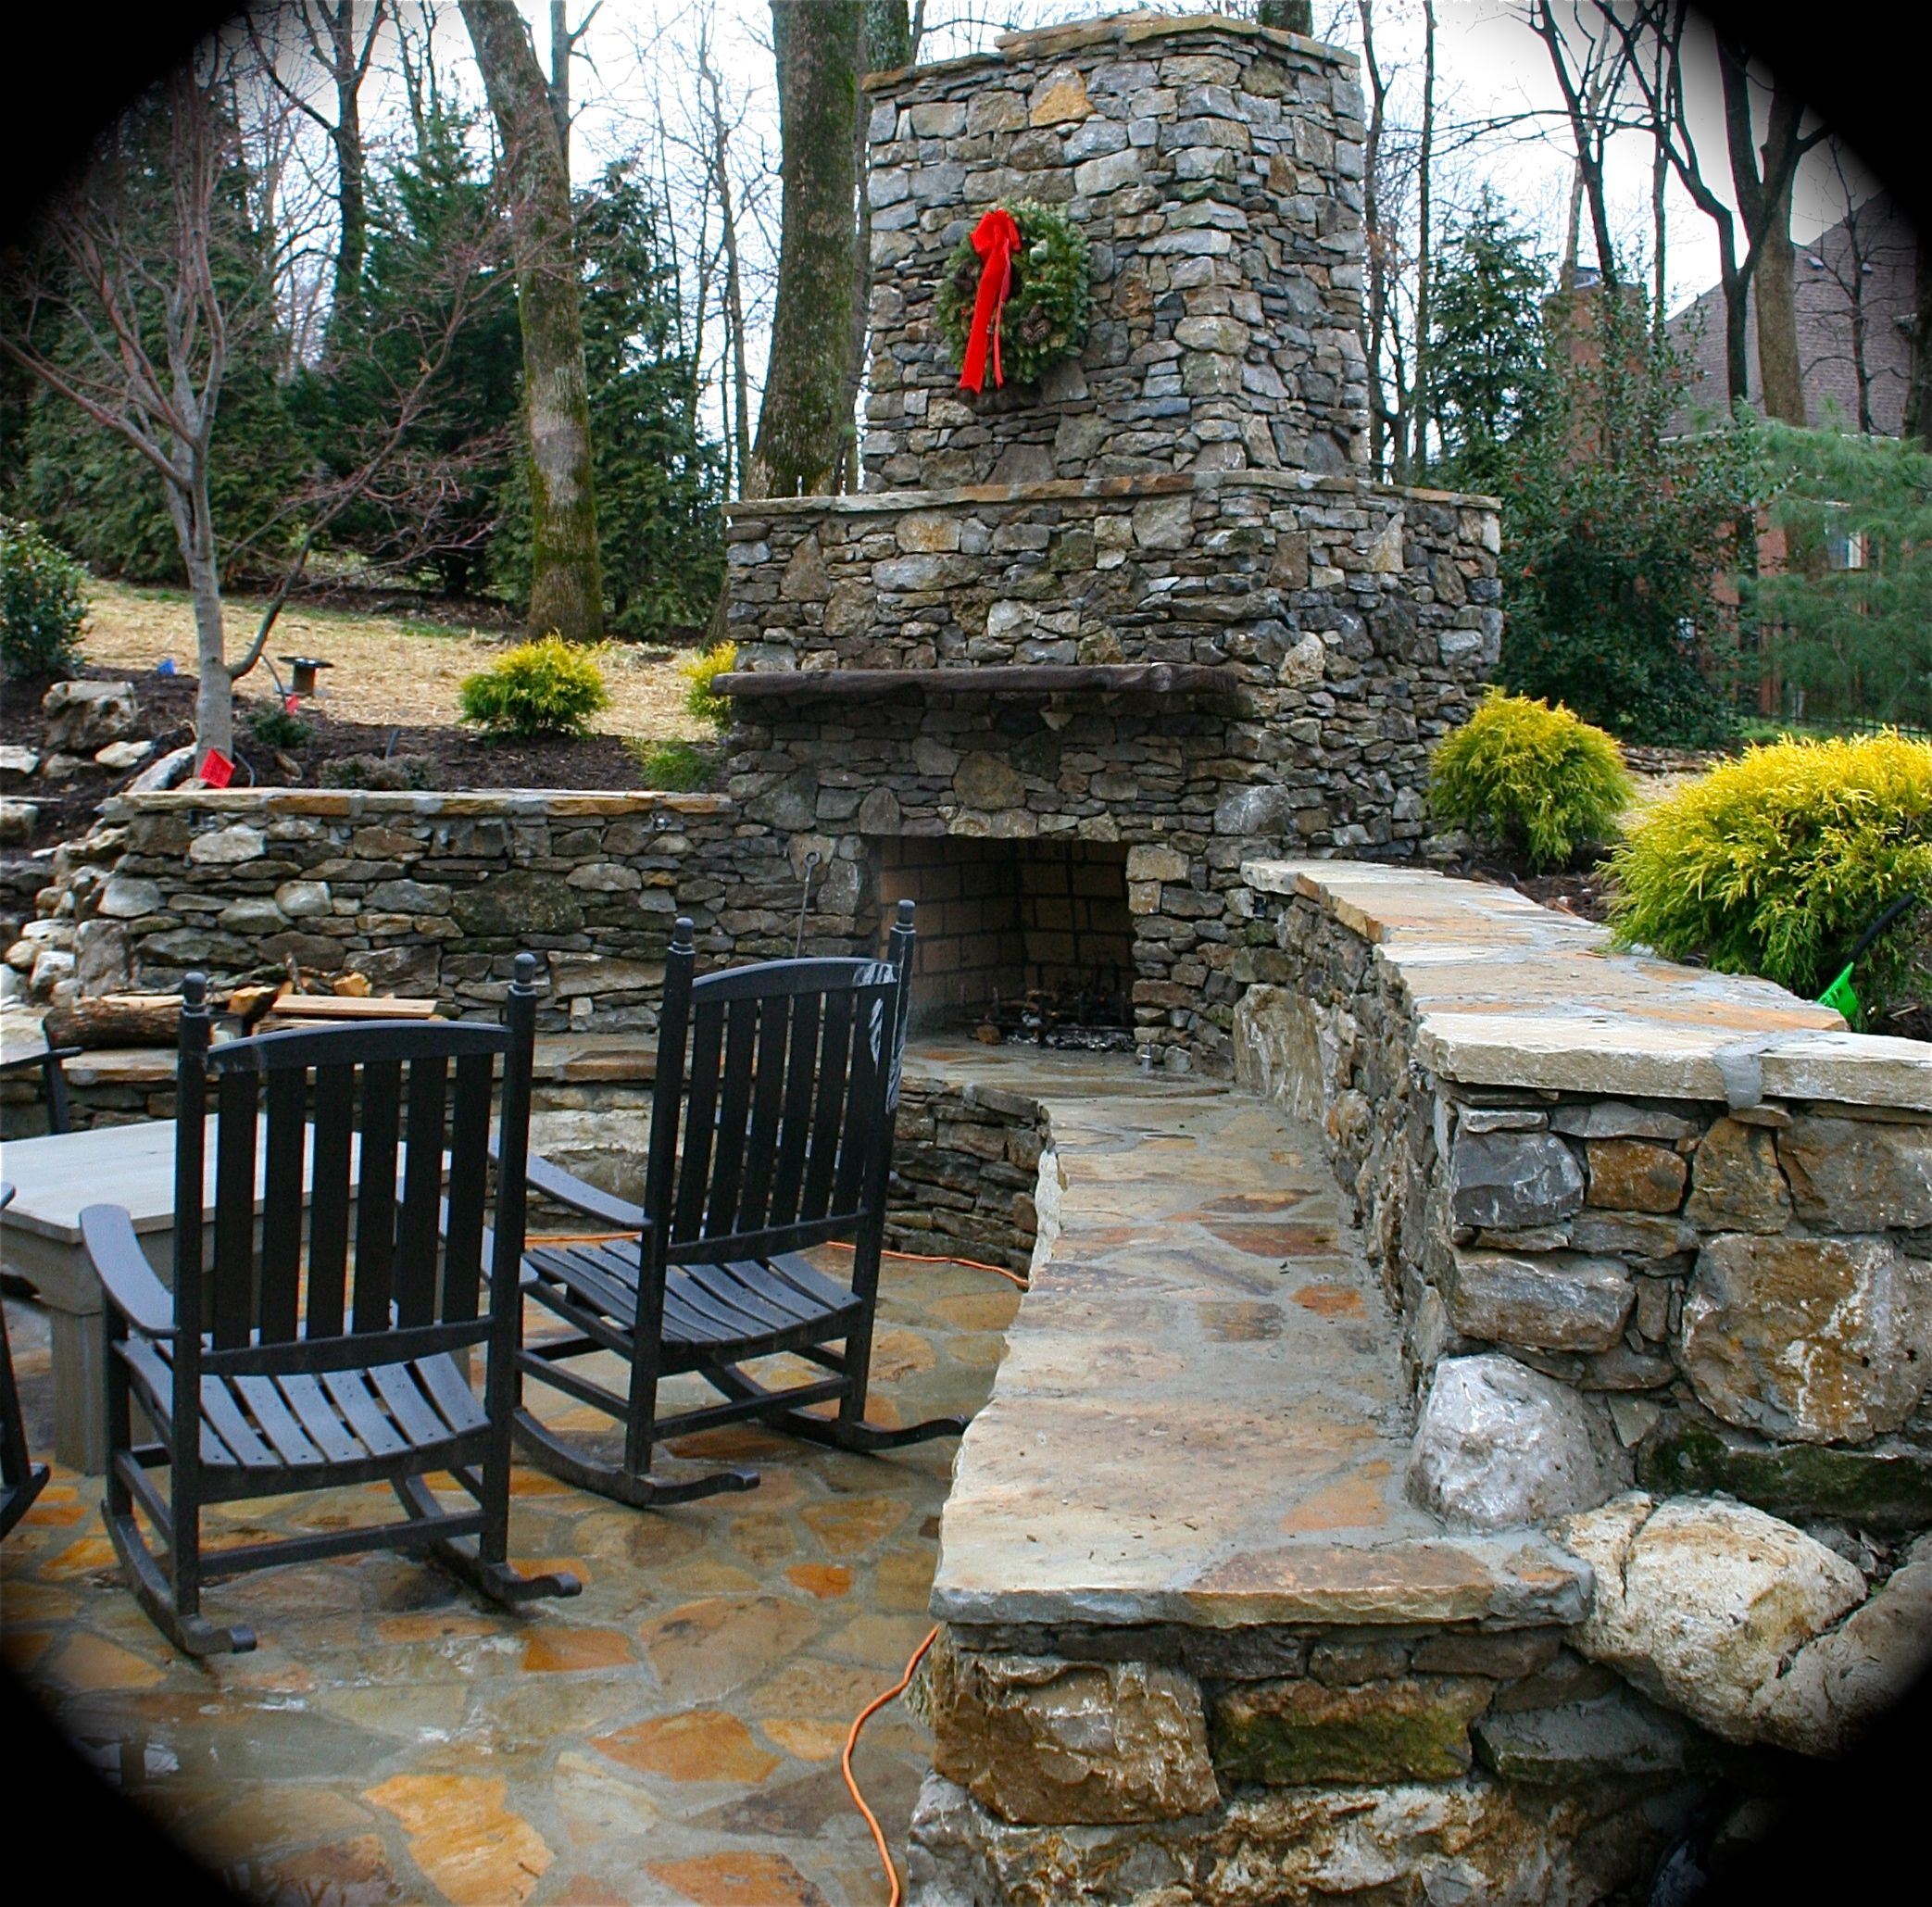 Fireplace, Seating Wall And Stone Patio